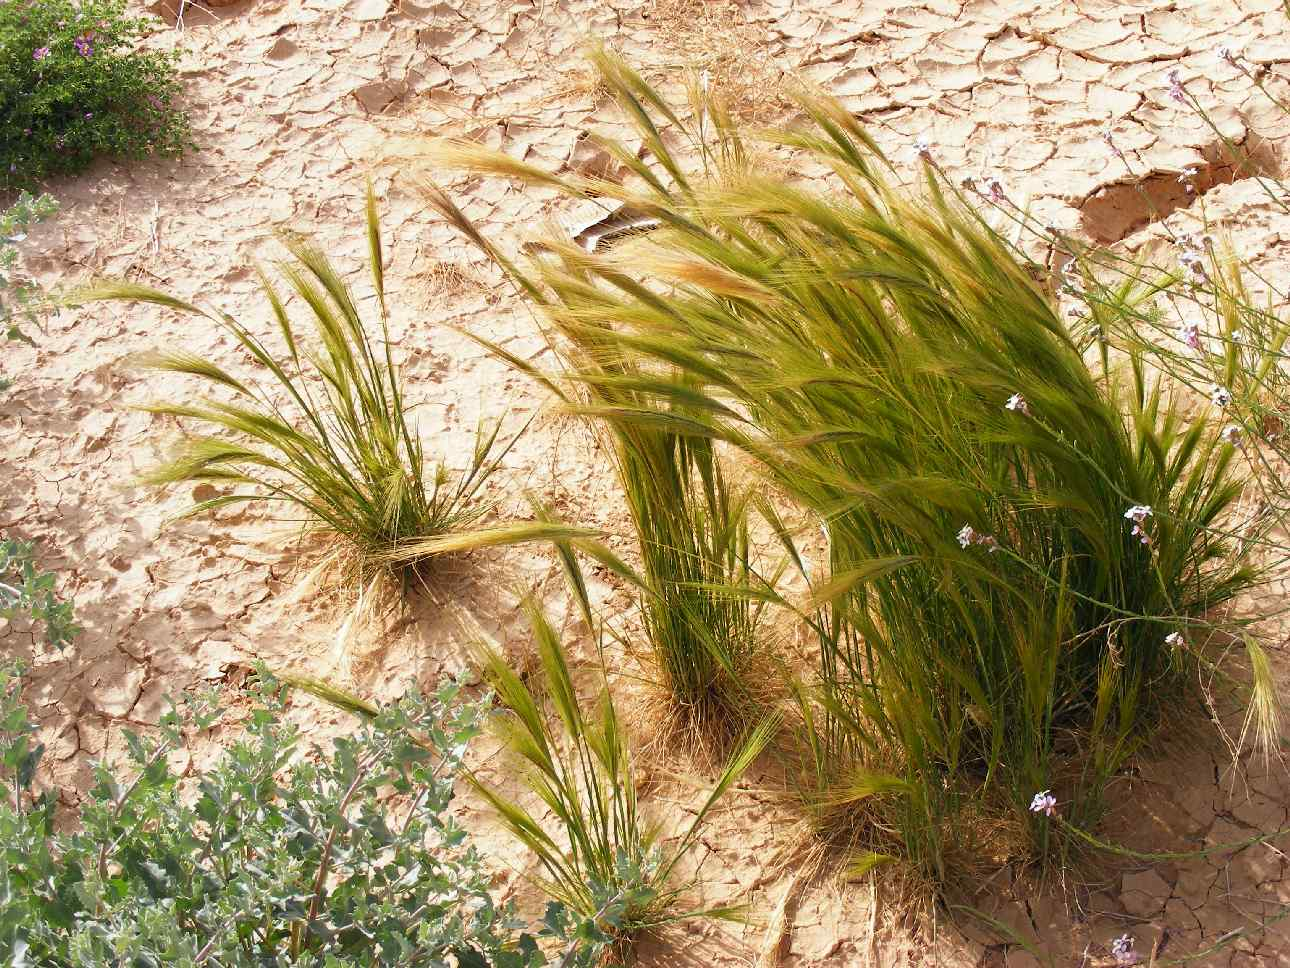 Northern grasses in Aravadesert following 2013 rains,